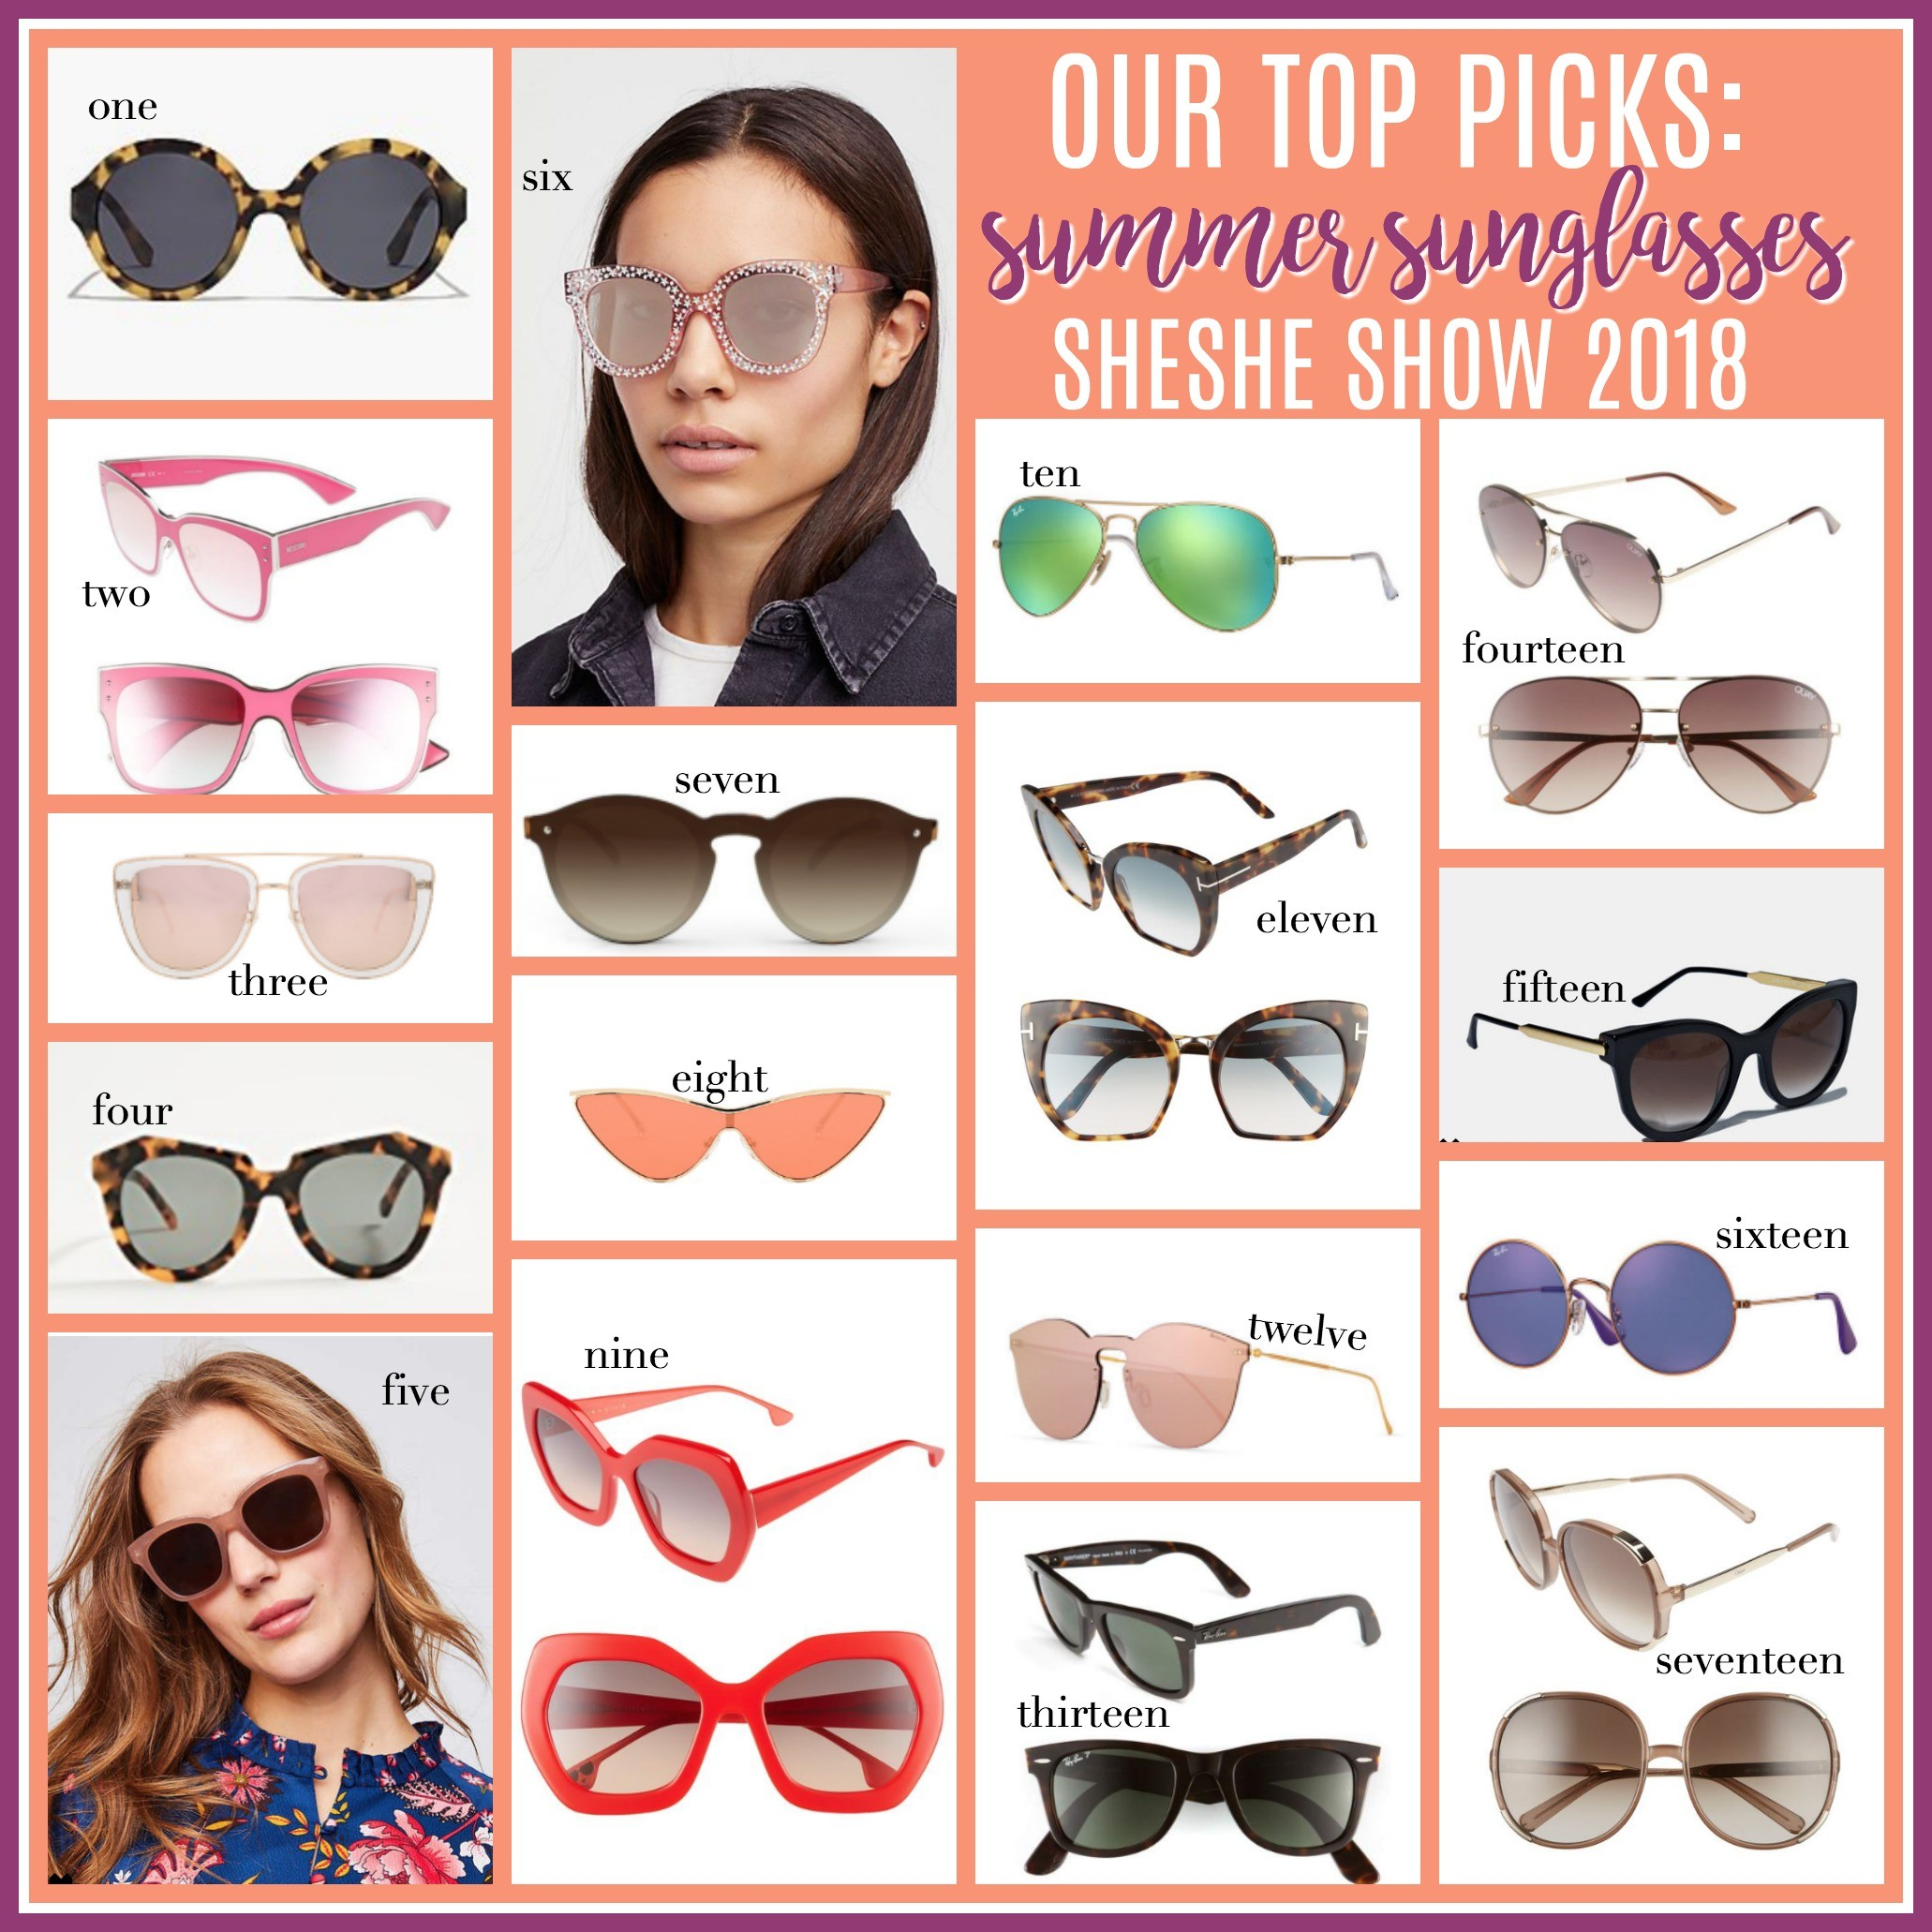 83229b4ad2 Let us know which pair of sunglasses is your favorite